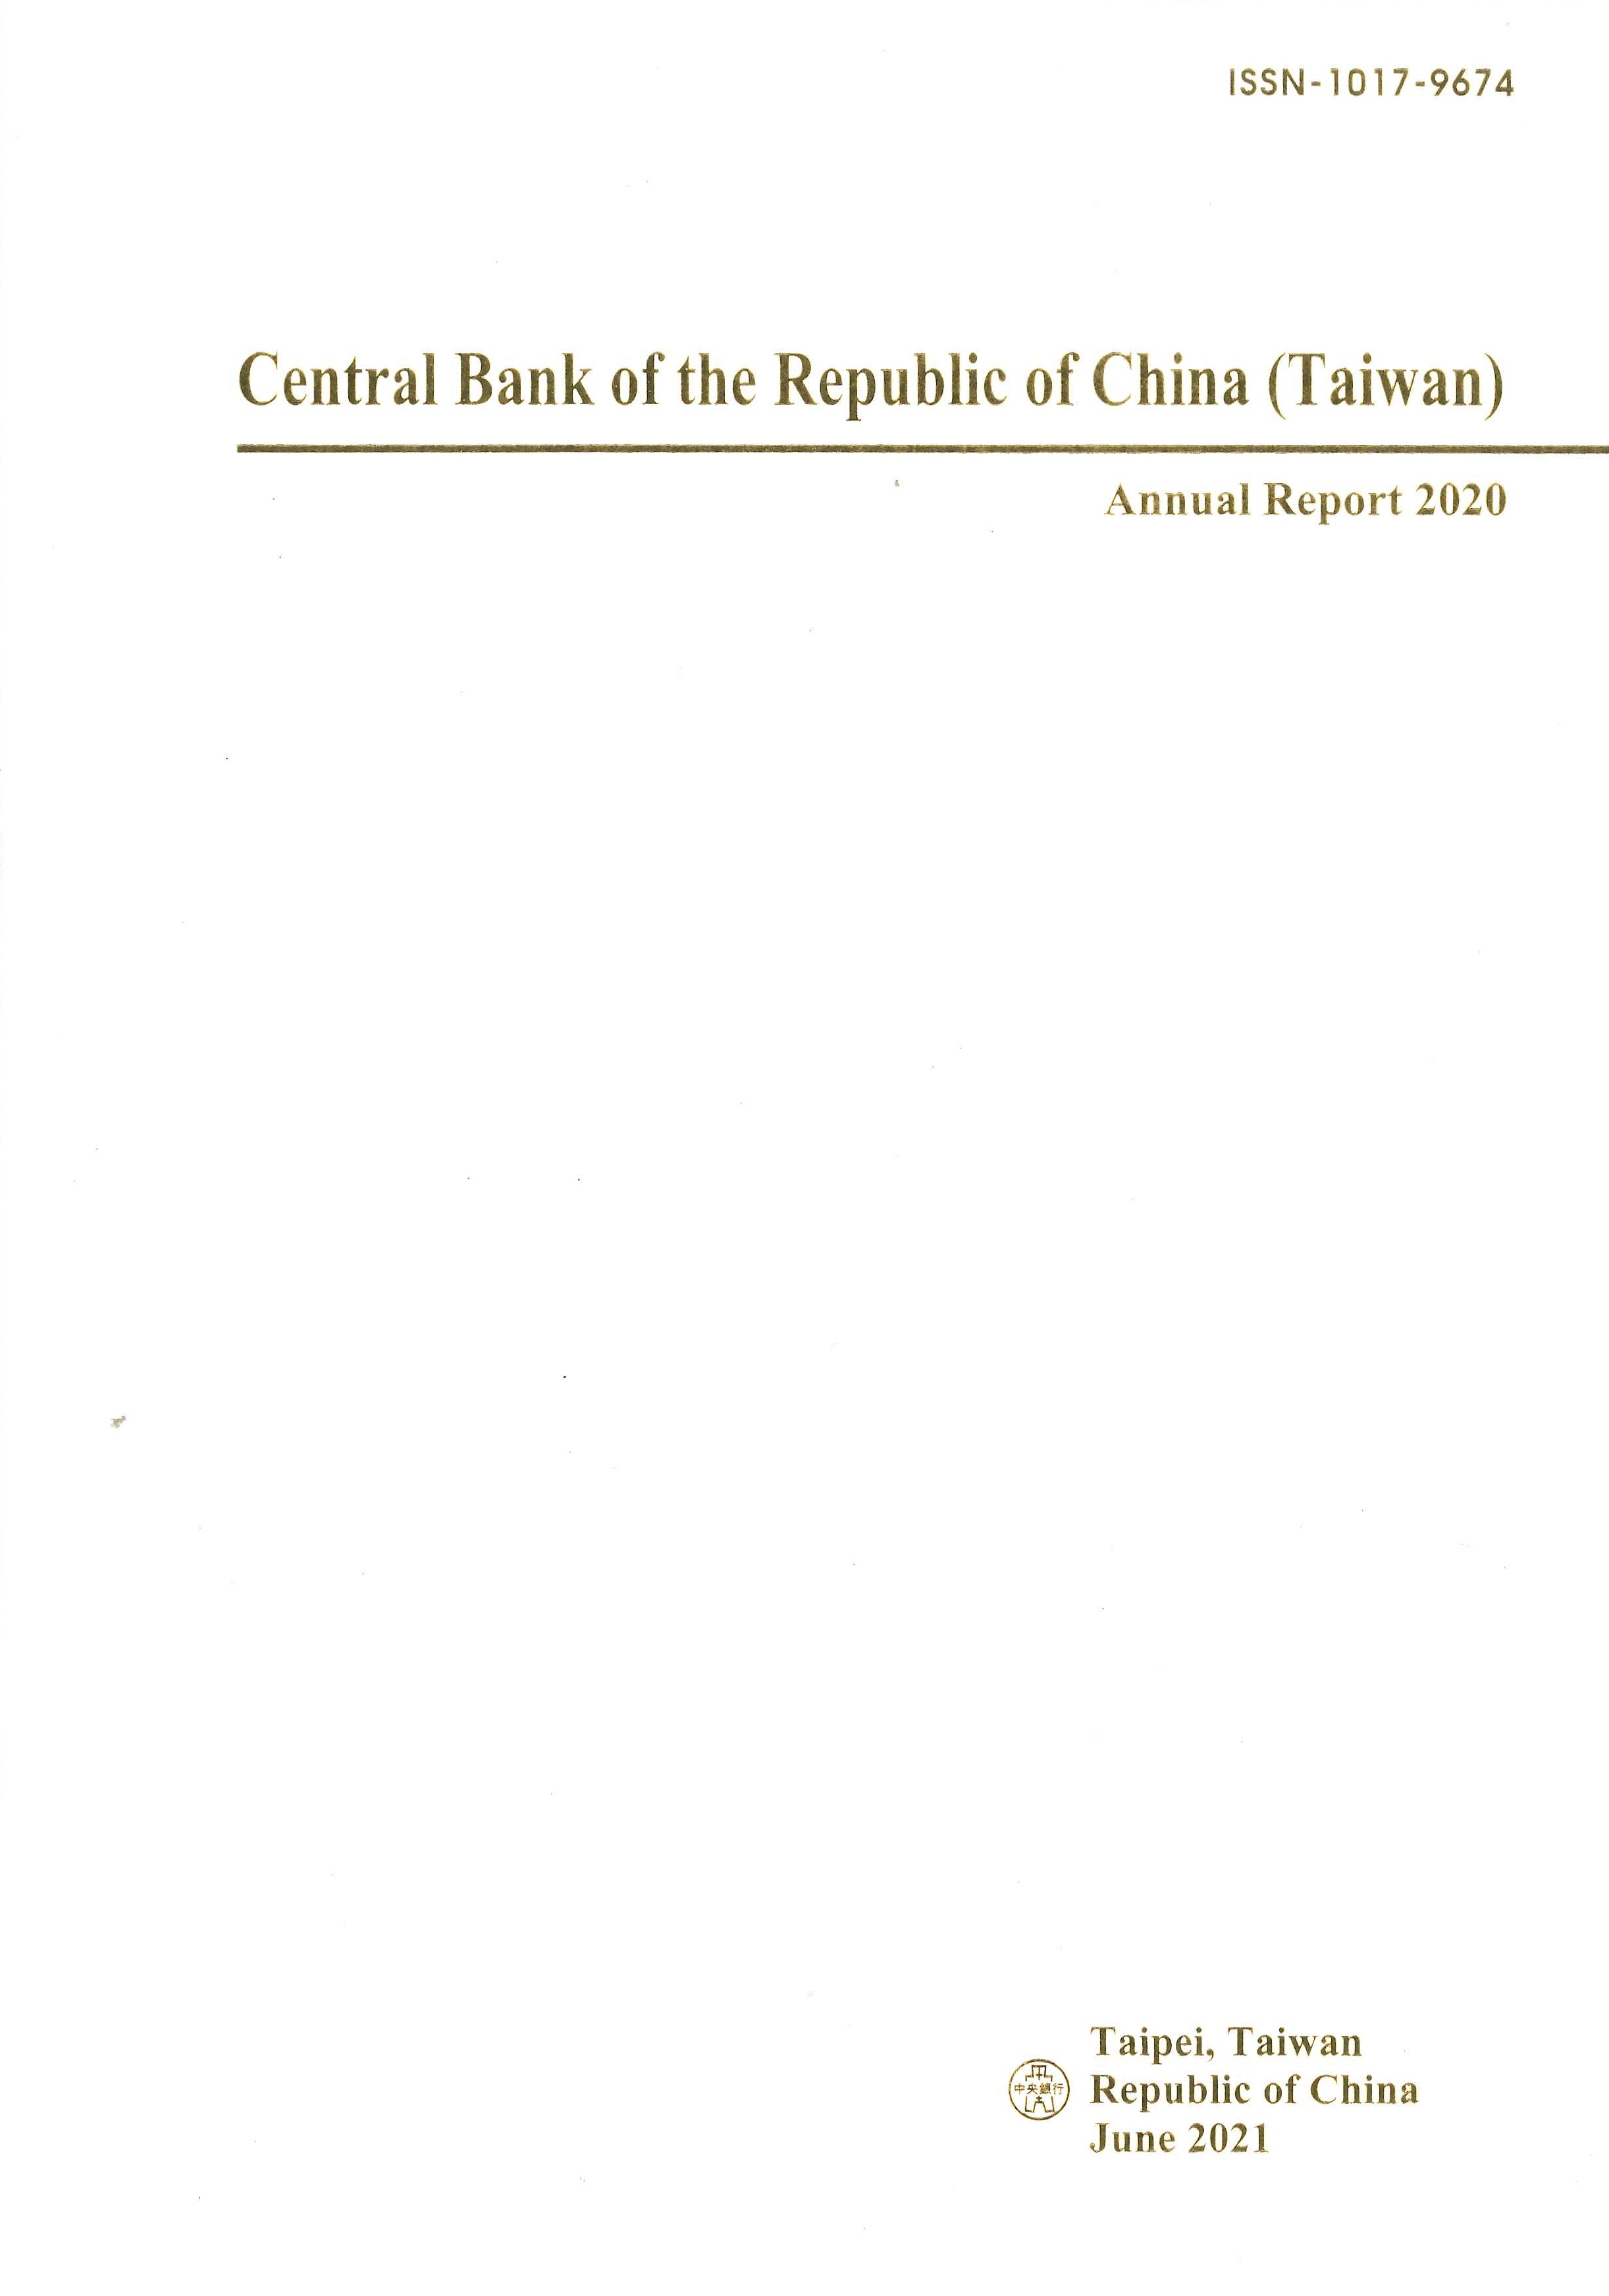 Central Bank of Republic of China (Taiwan):annual report